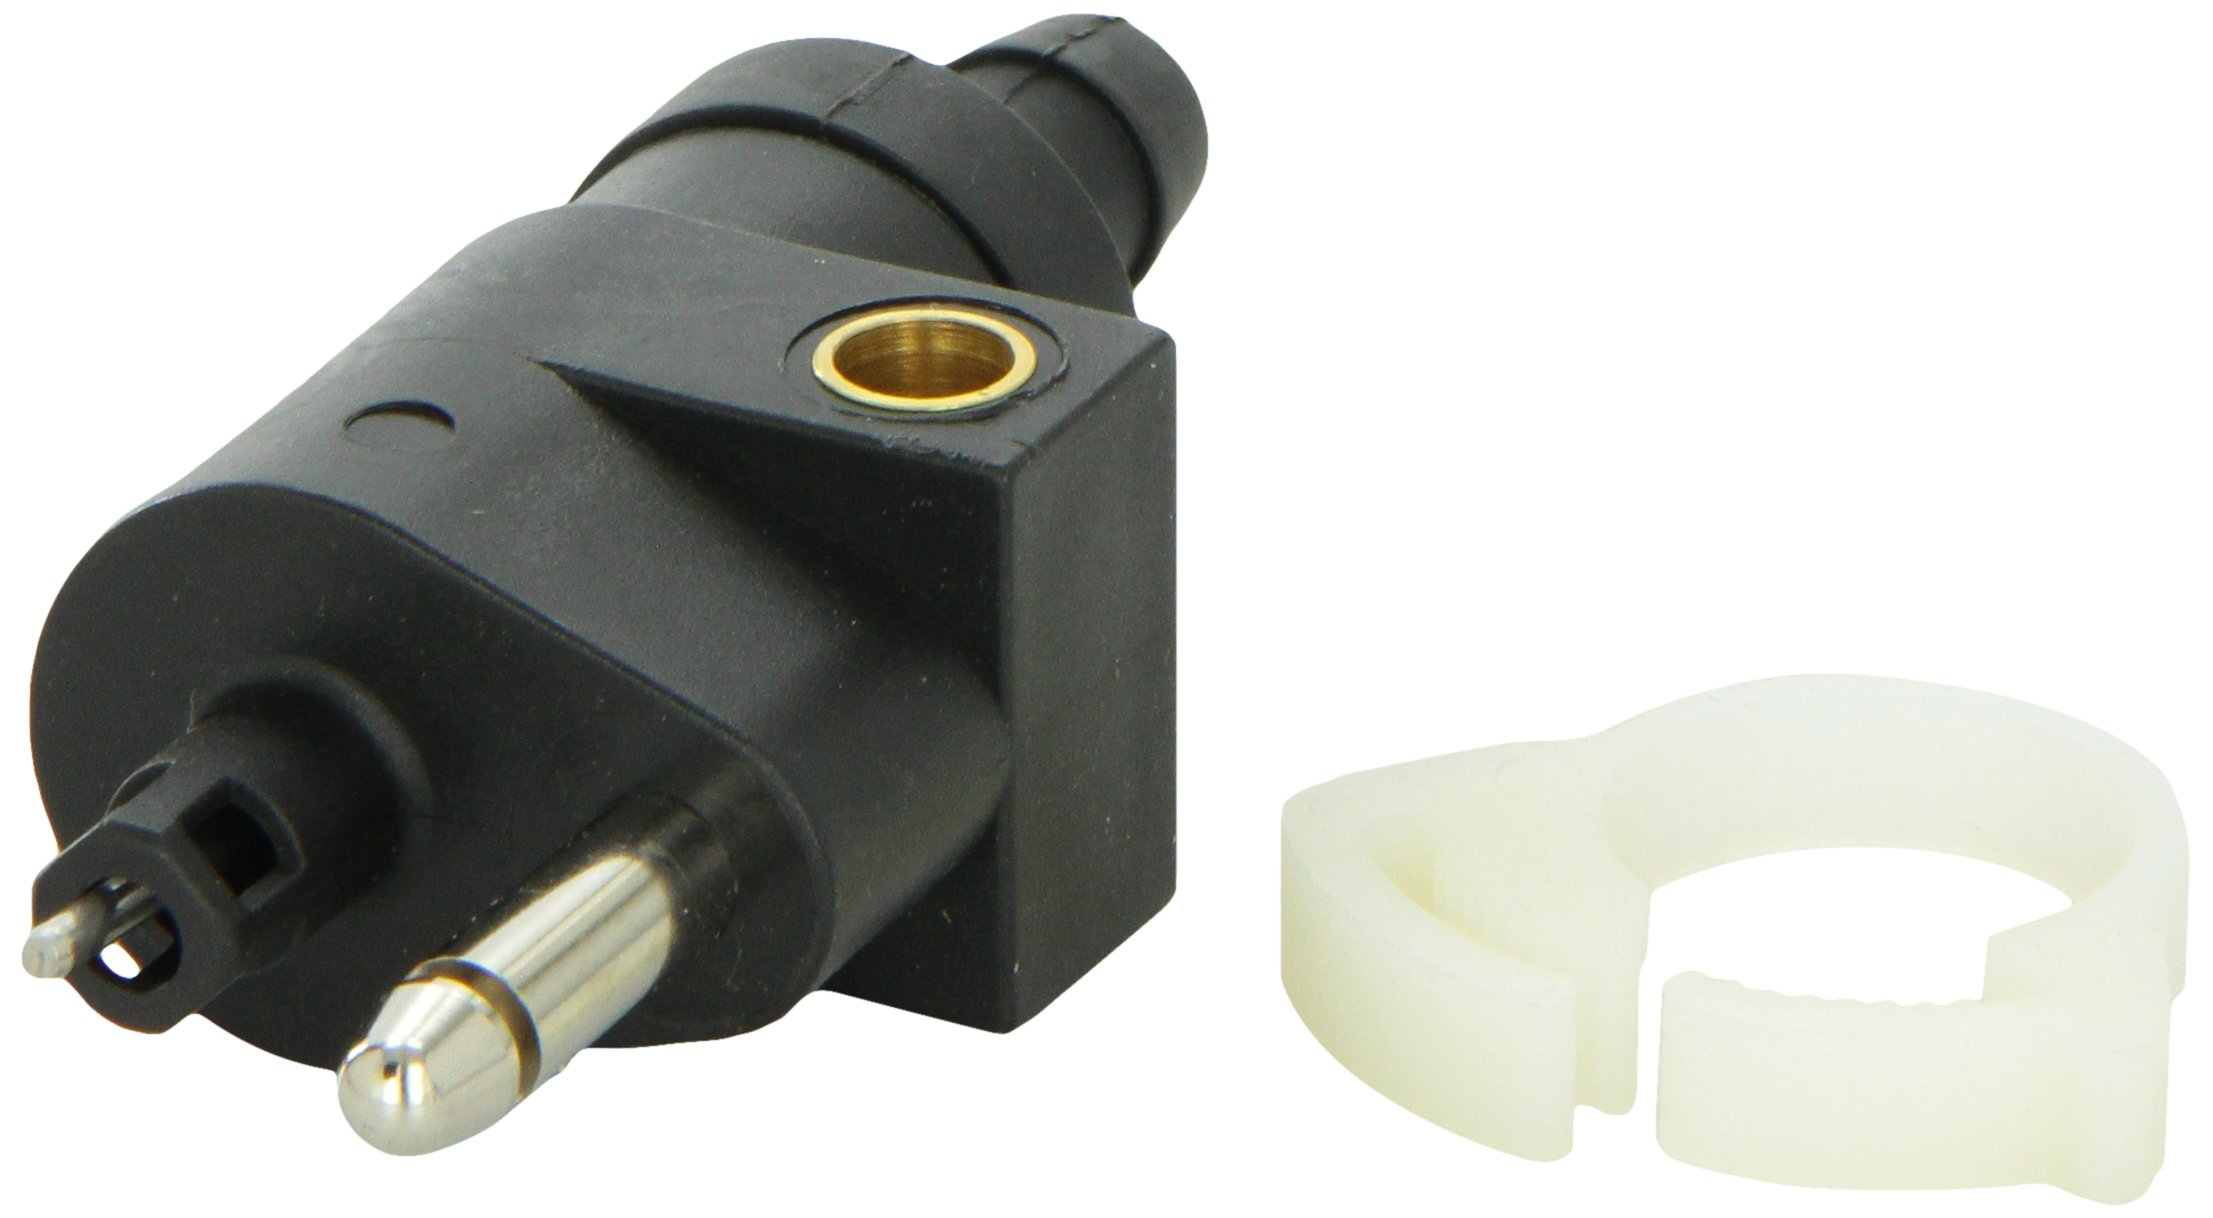 Sierra International 18-80412 5/16'' Male Marine Fuel Connector for Mercury and Mariner Outboard Motor